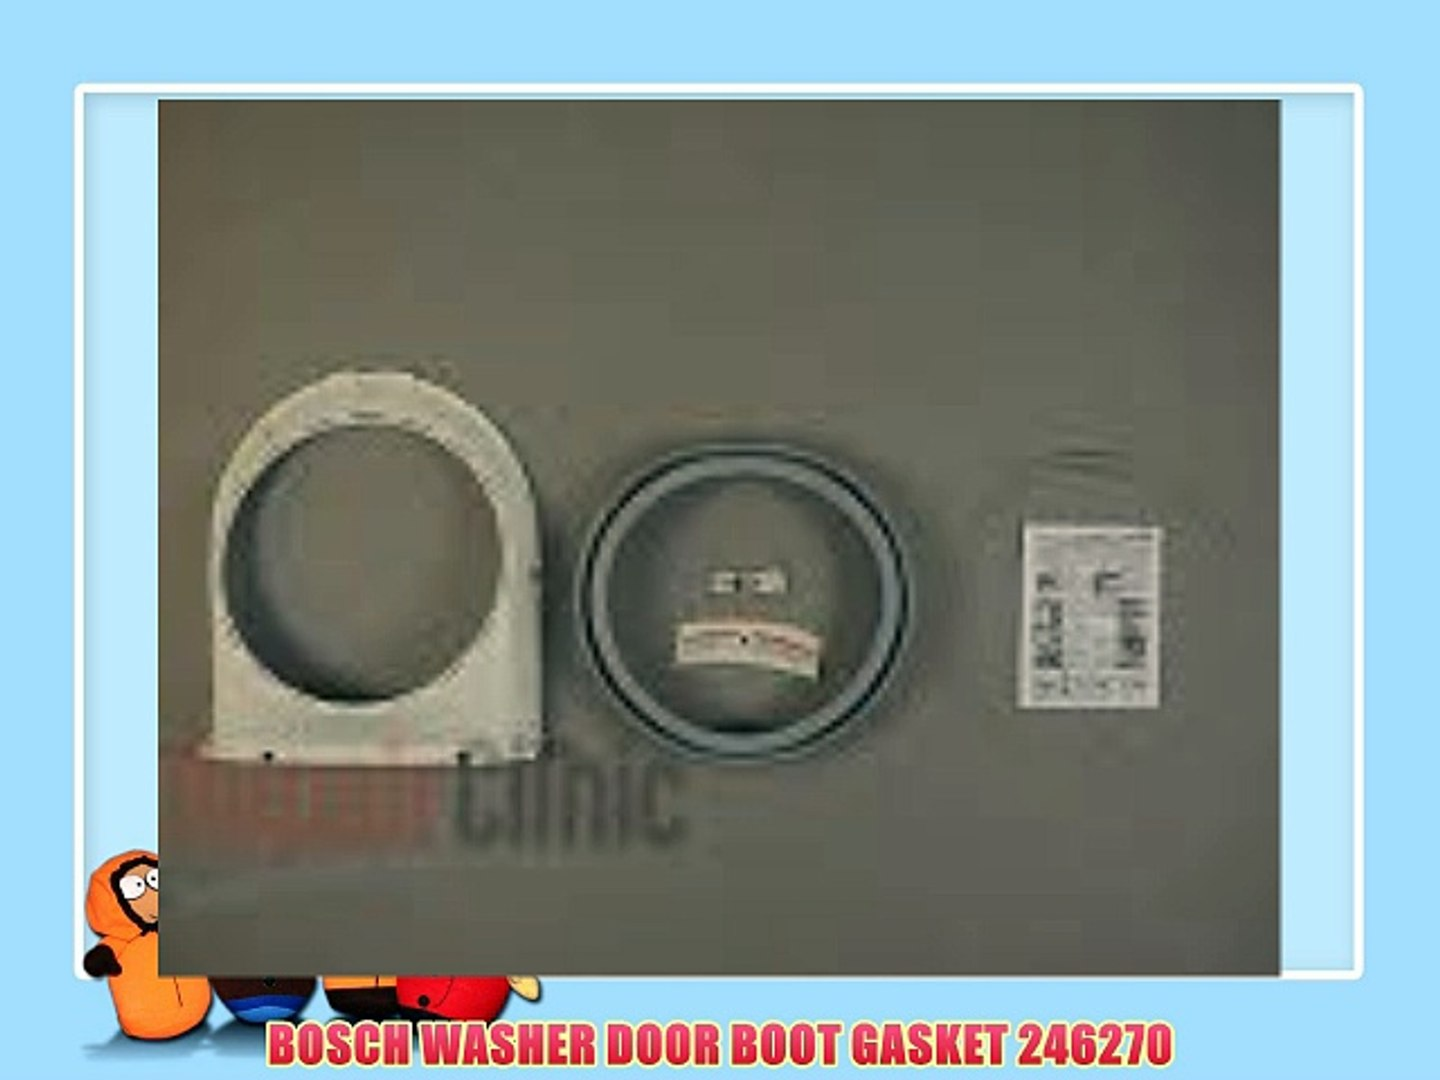 BOSCH WASHER DOOR BOOT GASKET 246270